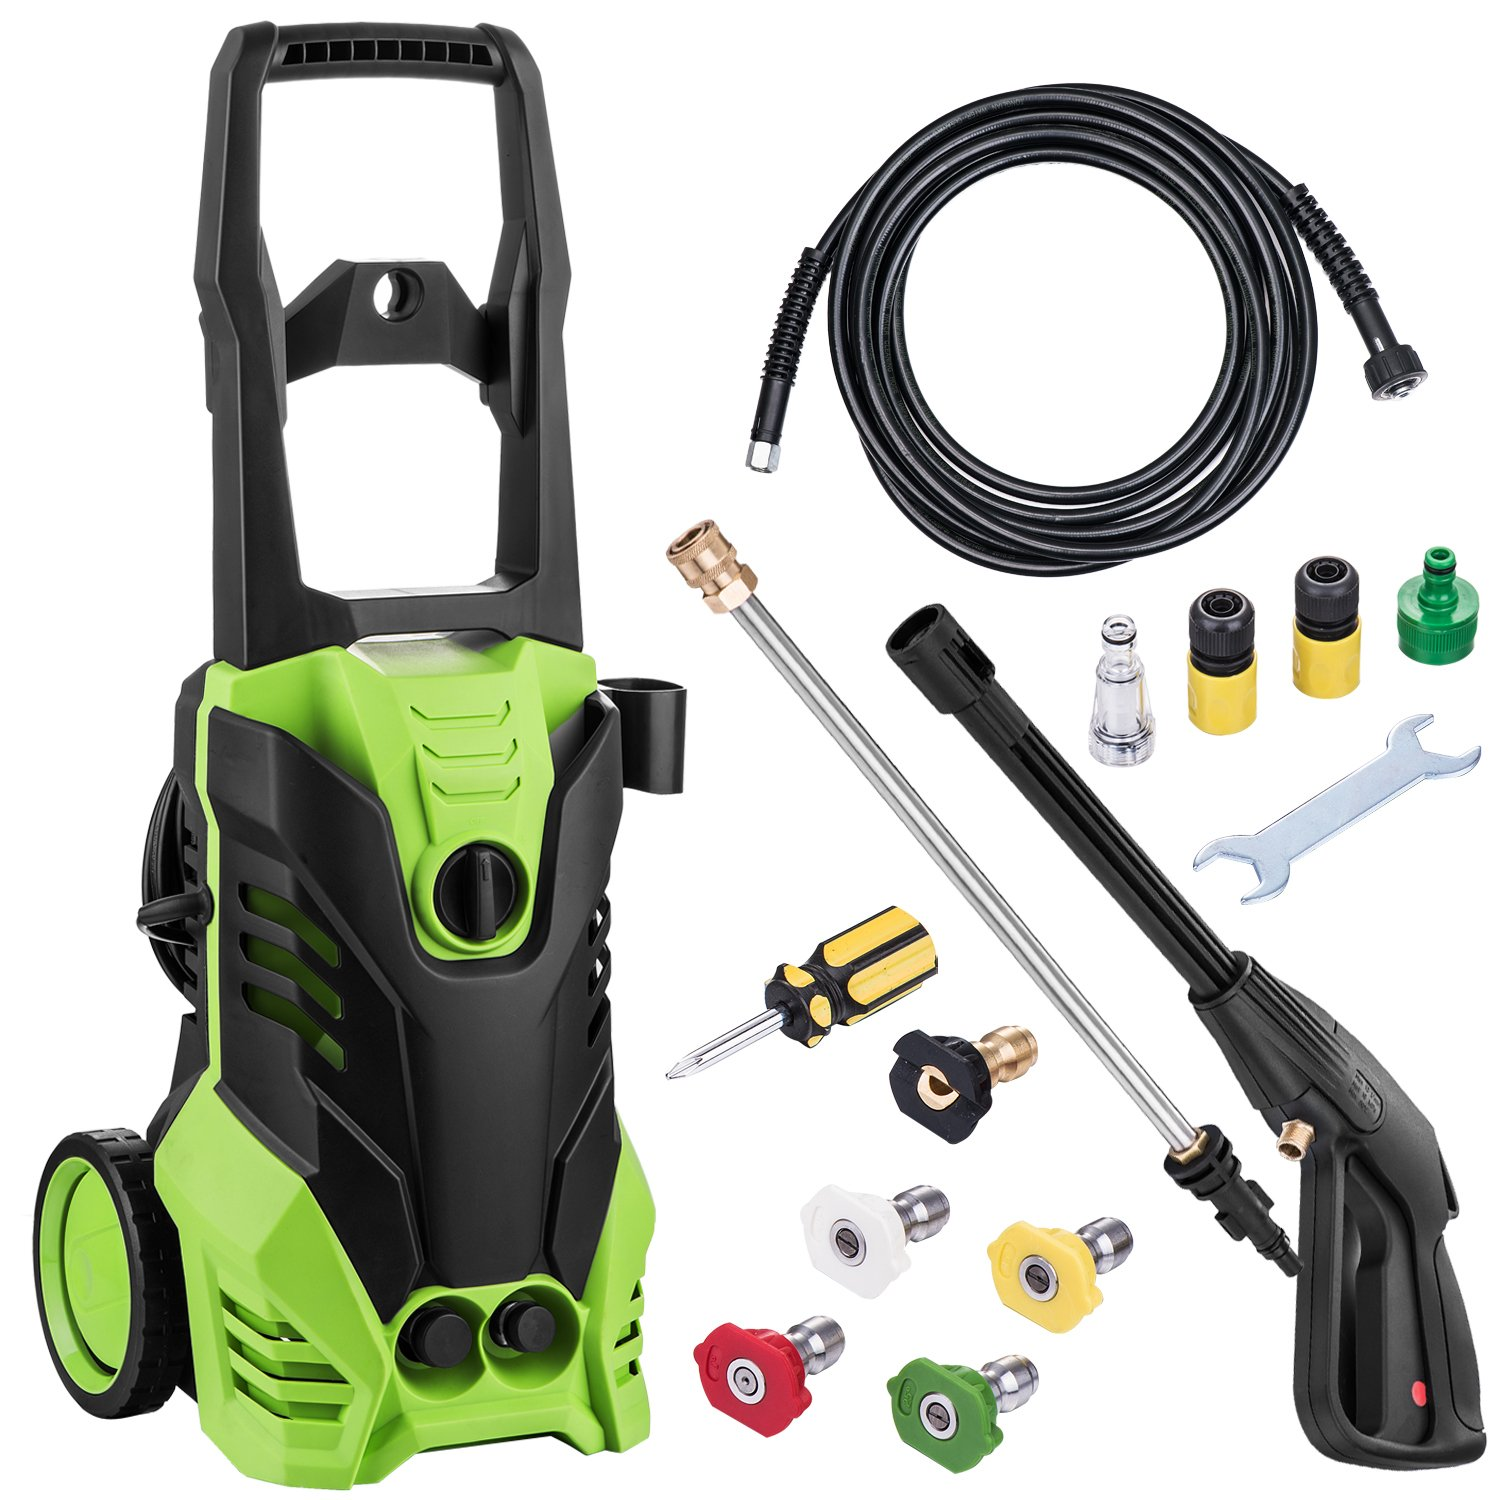 shaofu 3000 PSI Electric Pressure Washer 1800W Rolling Wheels High Pressure Professional Washer Cleaner Machine with Power Hose Nozzle Gun and 5 Quick-Connect Spray Tips (3000 PSI)